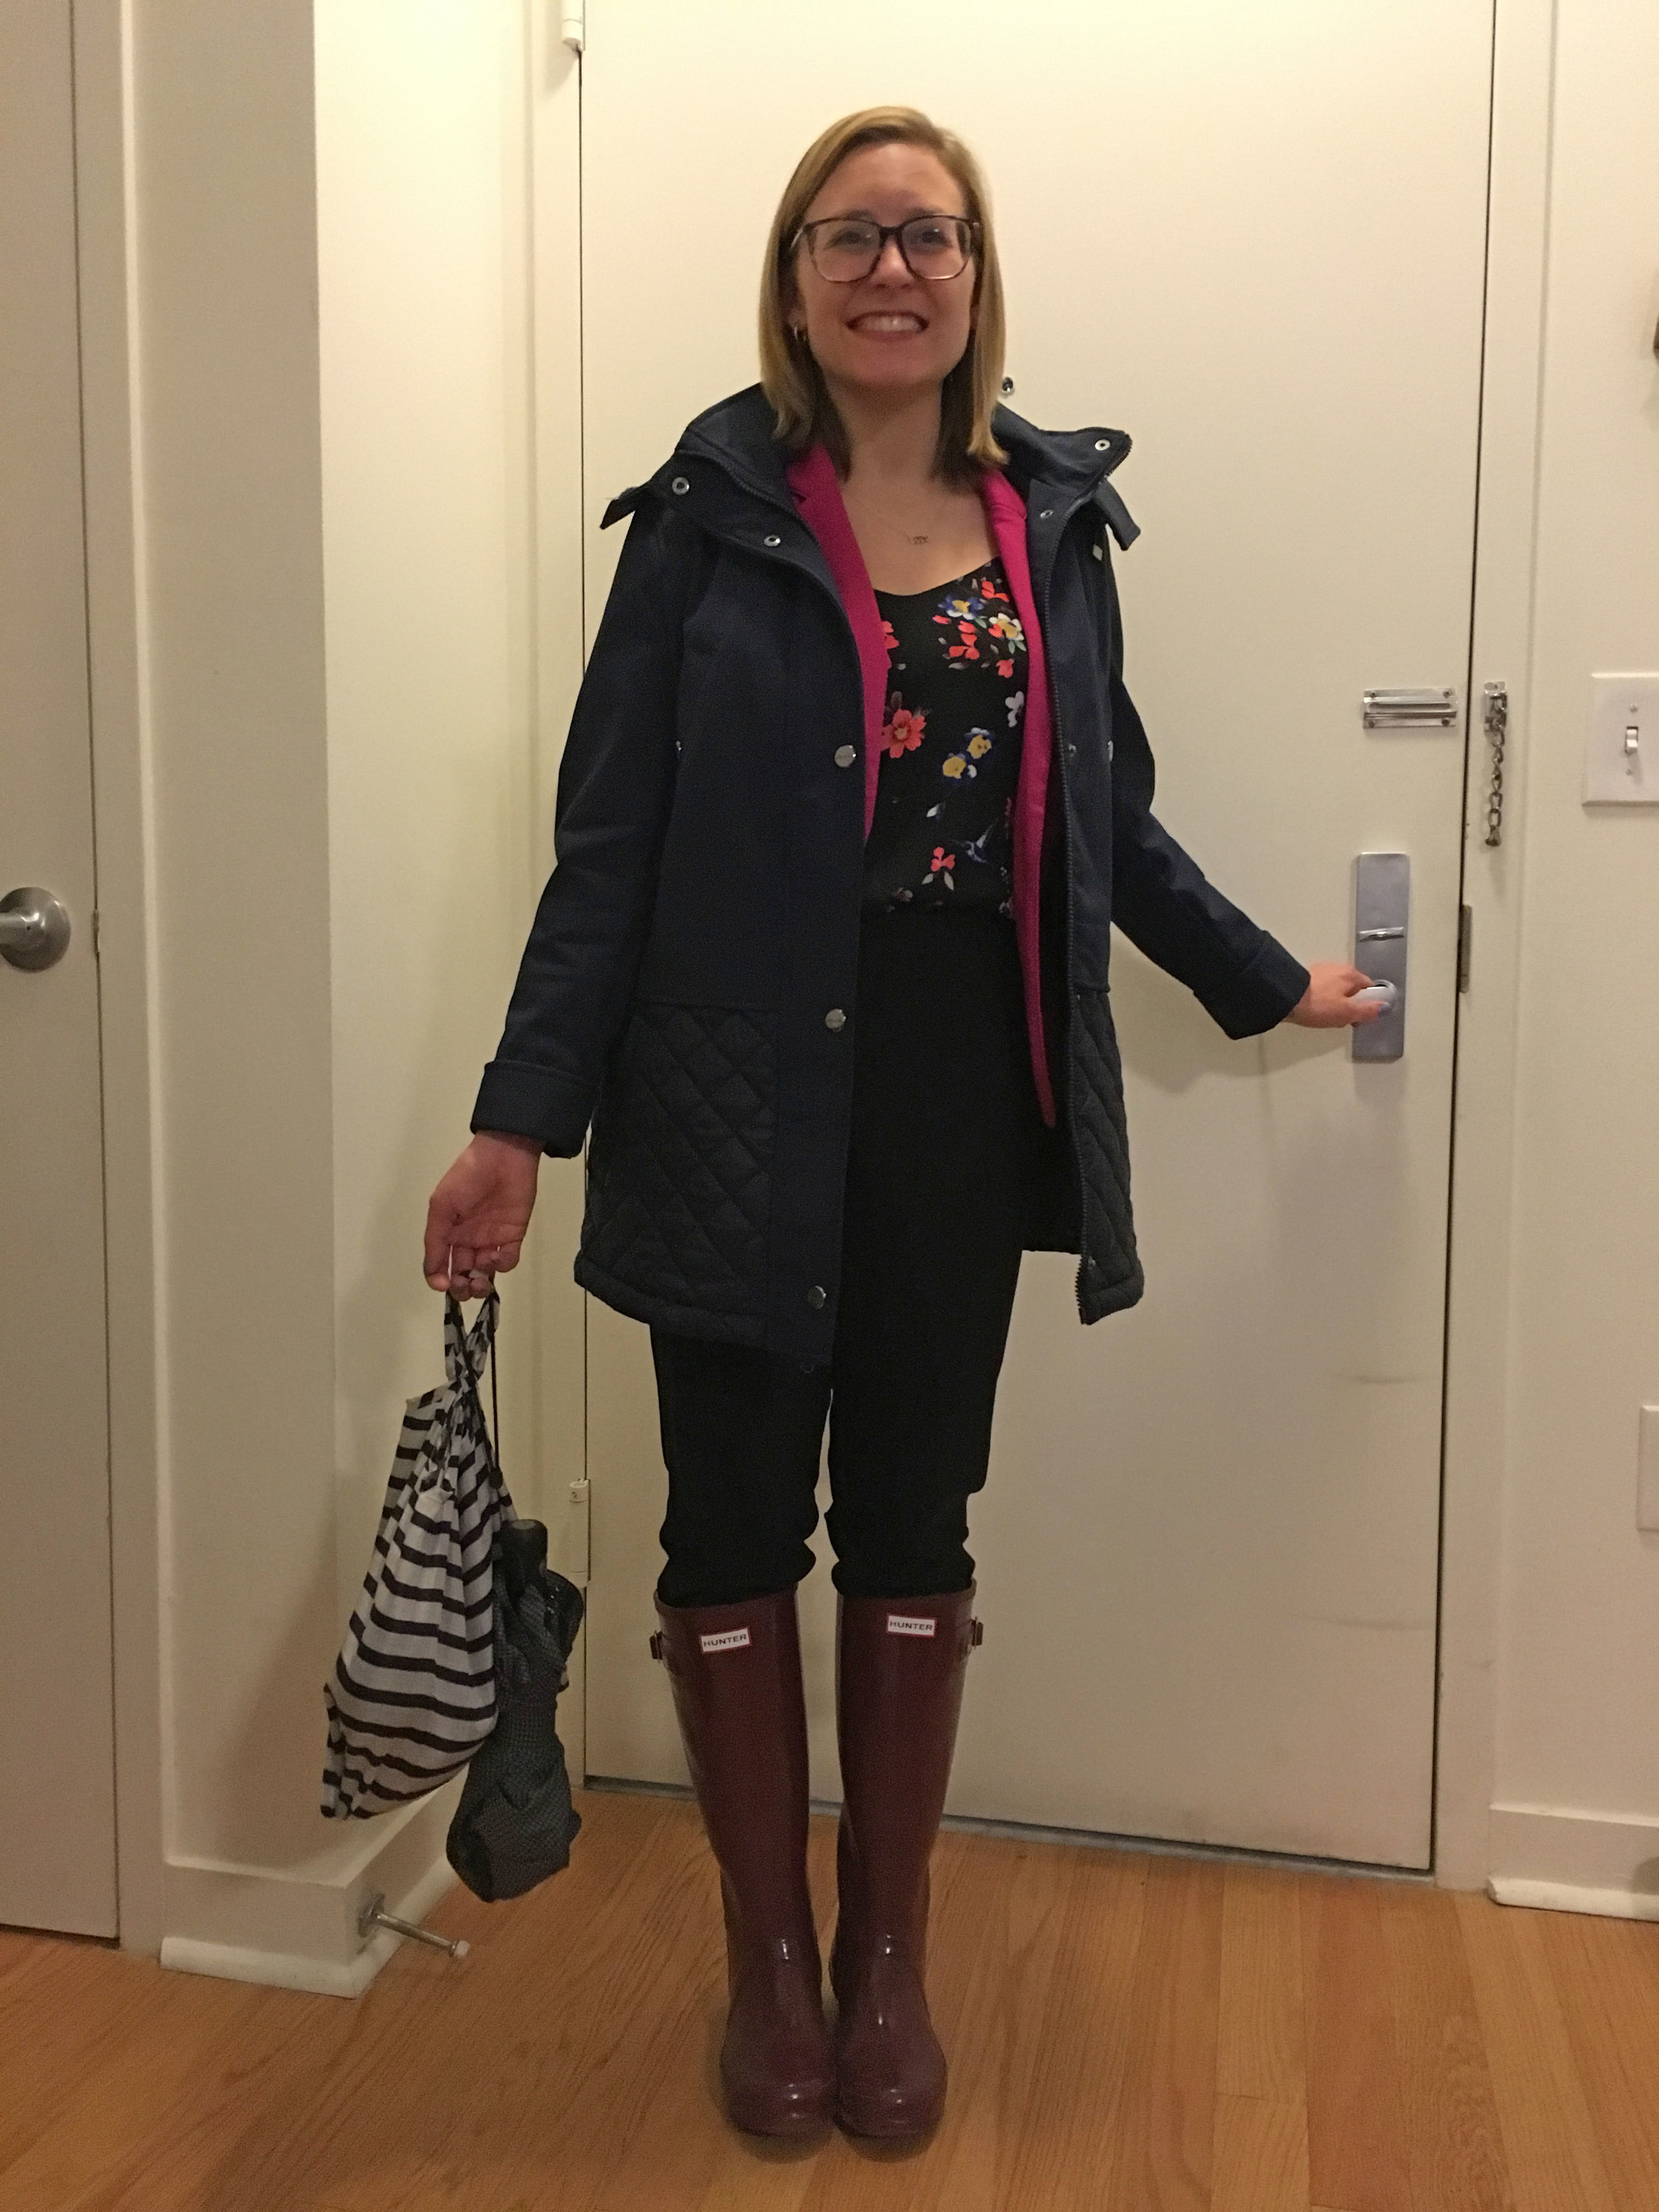 Commuting is real; protect your outfit to and from the office. Notice my shoe bag in hand with my umbrella.